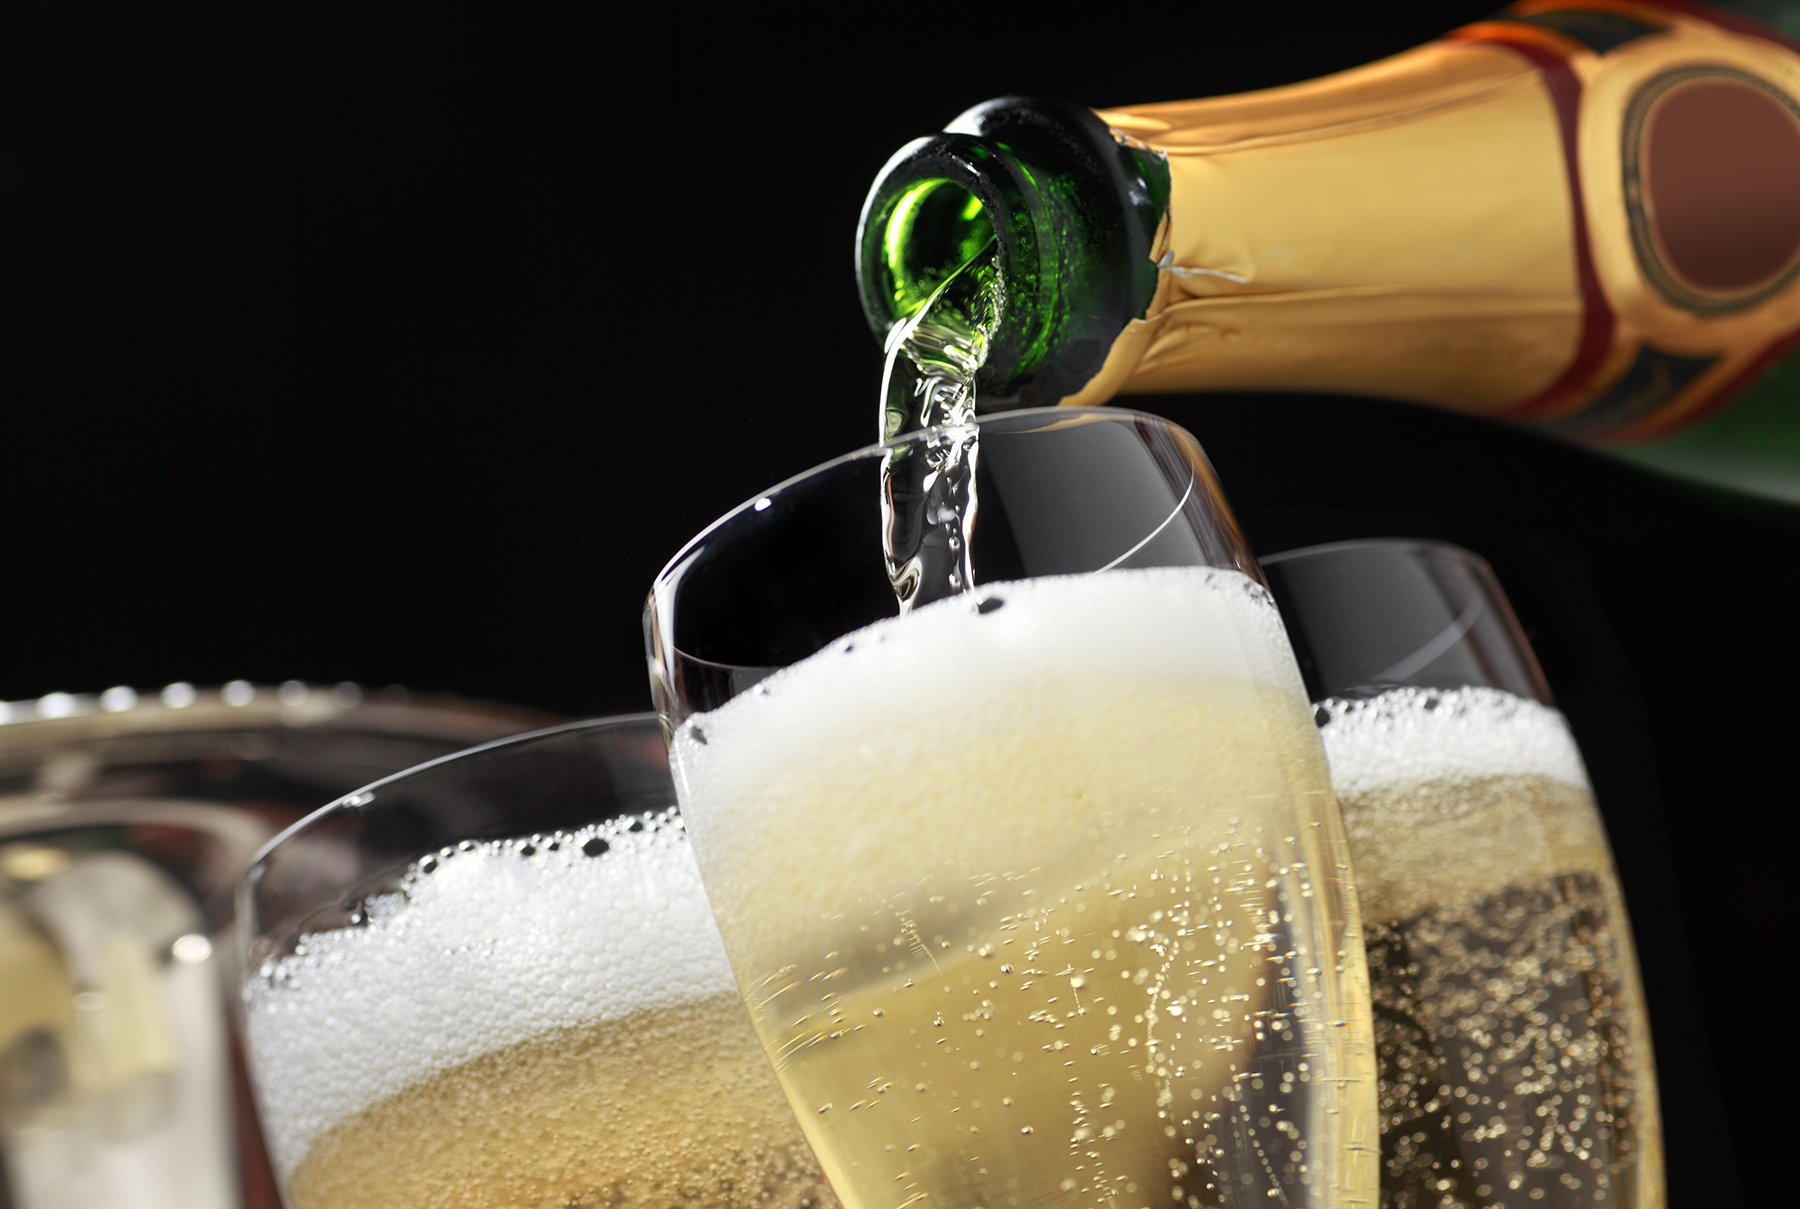 Sparkling Wines Market Remarkable Sales Performance;  Margin Ahead | Accolade Wines Australia Limited, Bronco Wine Company